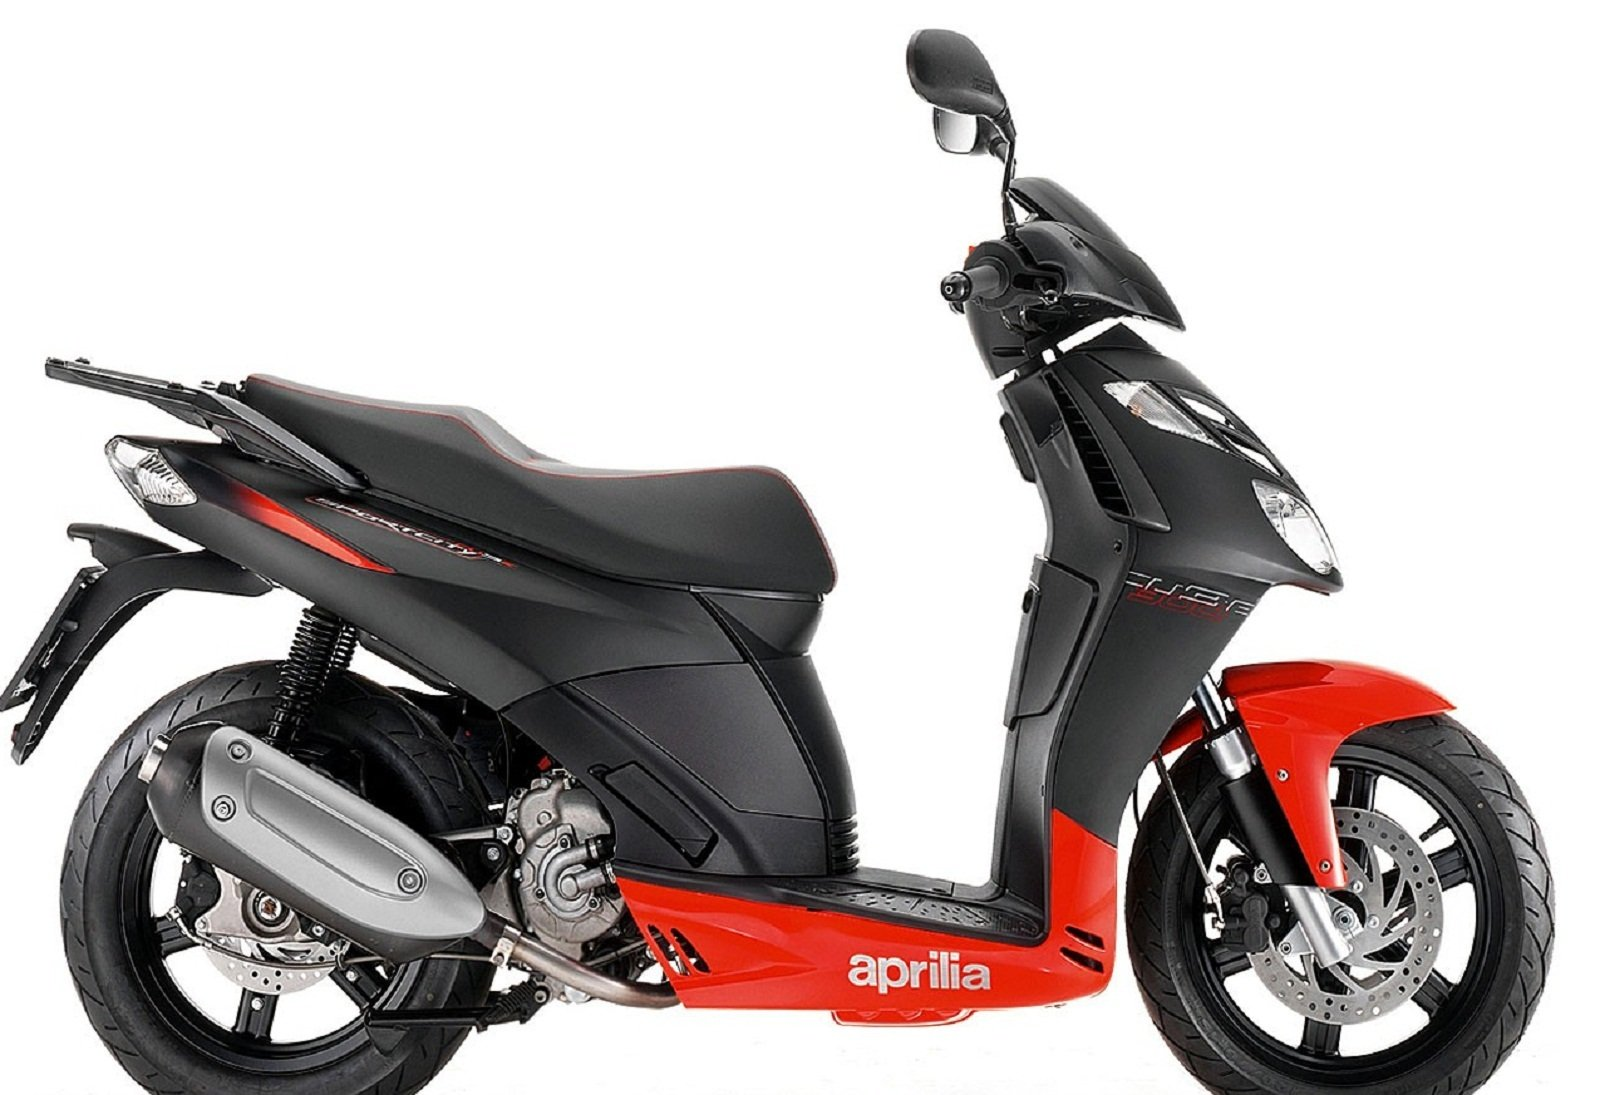 2012 aprilia sportcity cube 125 300 picture 439135 motorcycle review top speed. Black Bedroom Furniture Sets. Home Design Ideas